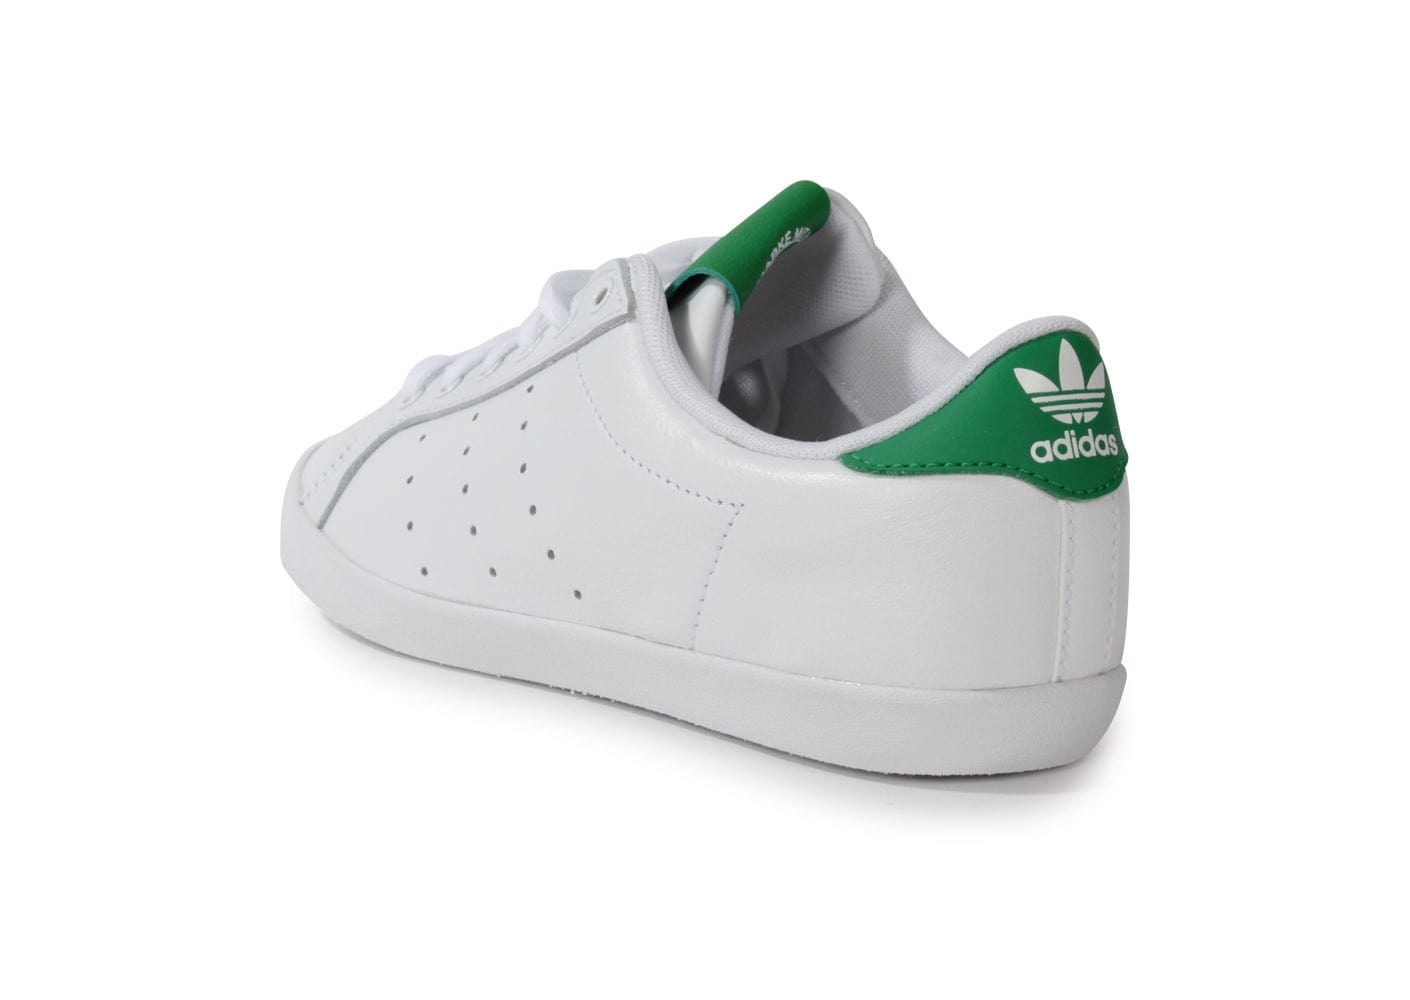 adidas miss stan blanche verte chaussures adidas chausport. Black Bedroom Furniture Sets. Home Design Ideas